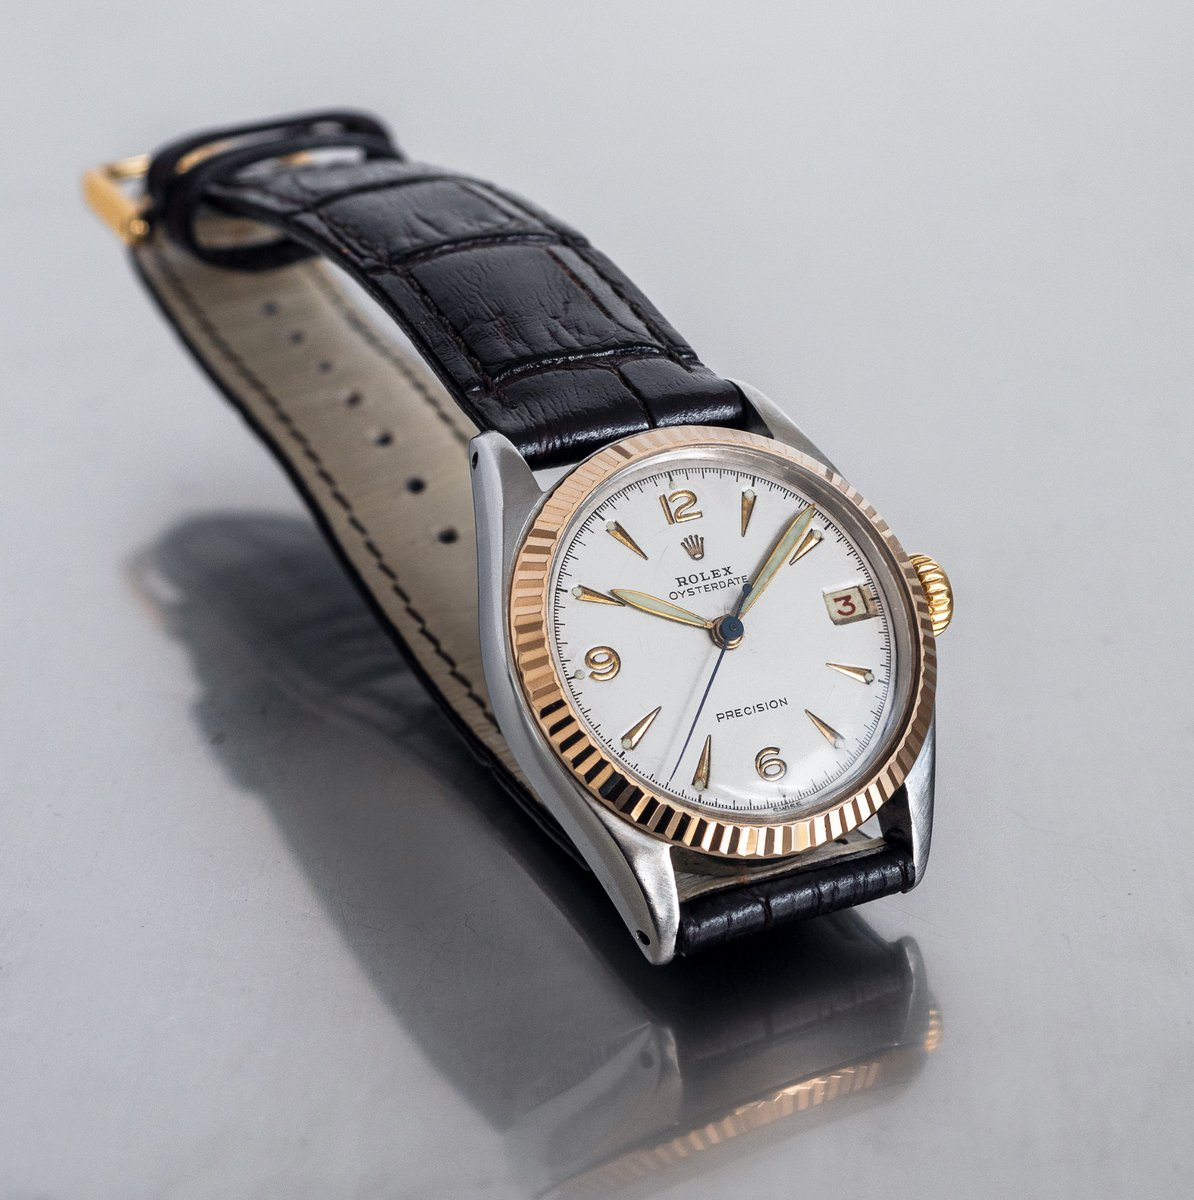 test ツイッターメディア - <Today's Vintage Wrist>  A very attractive vintage Rolex OysterDate Precision dating to the year 1952.   https://t.co/uBhki21GvW  #Rolex #ロレックス #fttts_tokyo #Vintagewatch #watch #vintage #watches #時計 #1952 #Oysterdate Precision https://t.co/VwsUsRQxVK